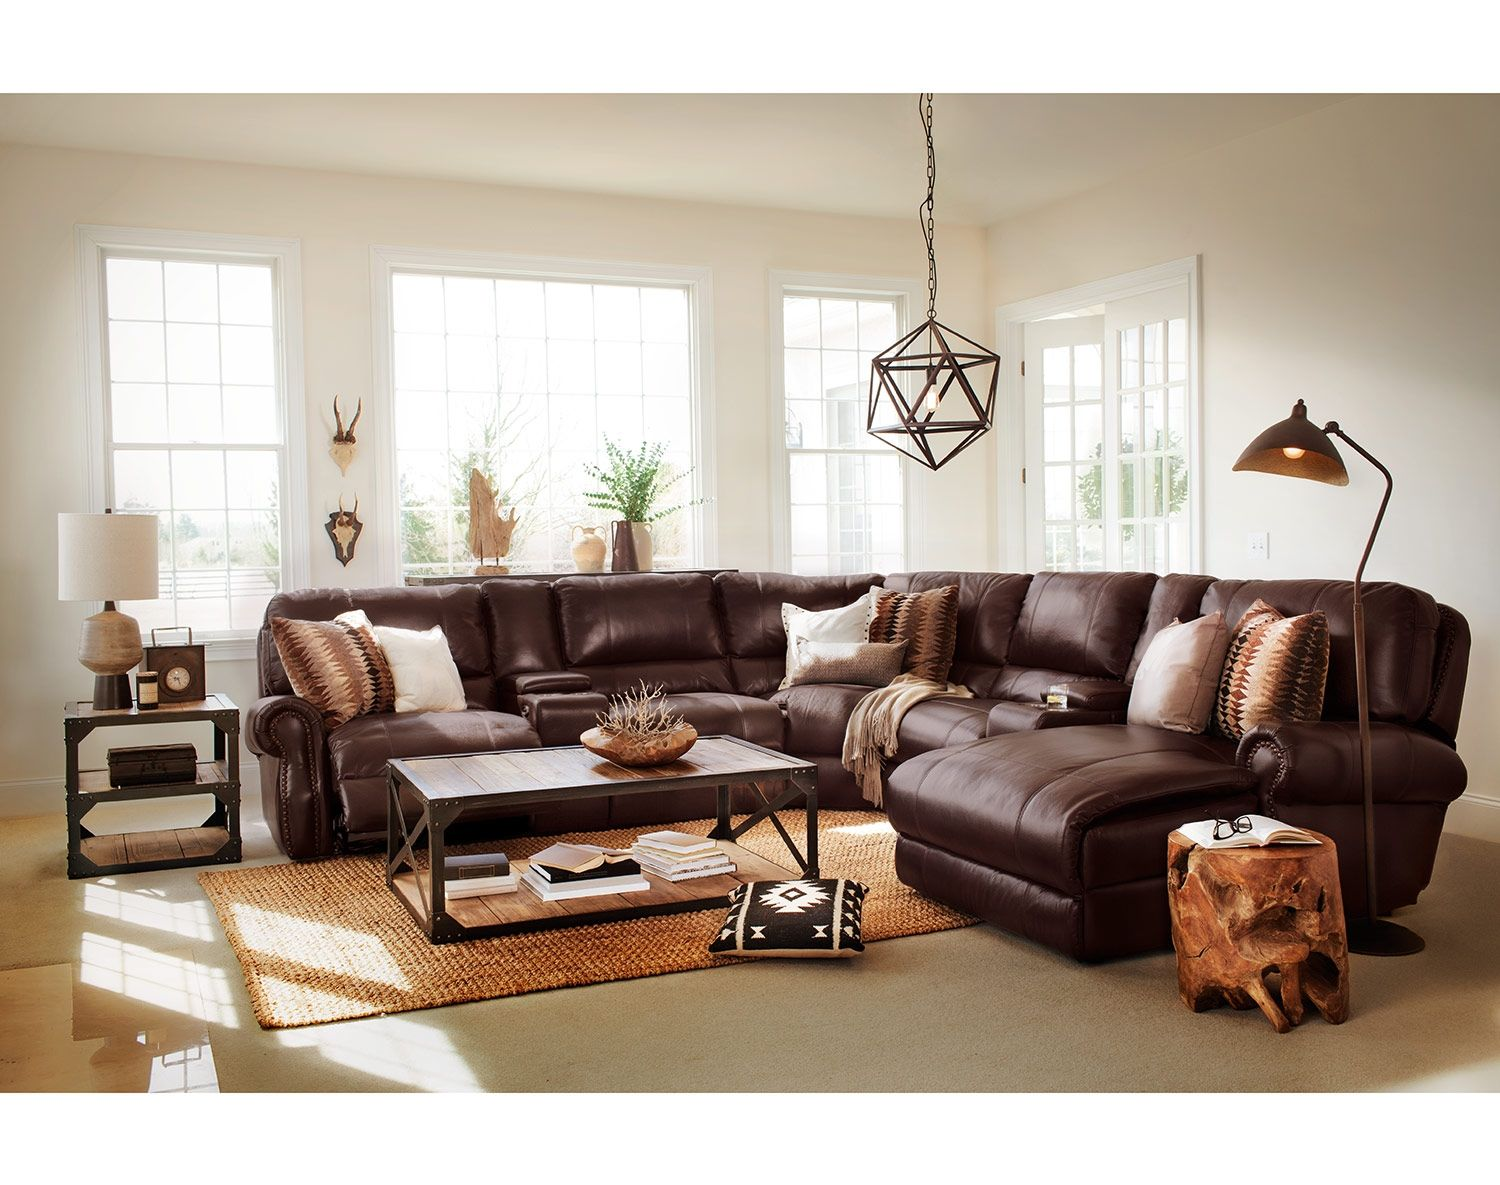 Best The Princeton Collection American Signature Furniture 400 x 300